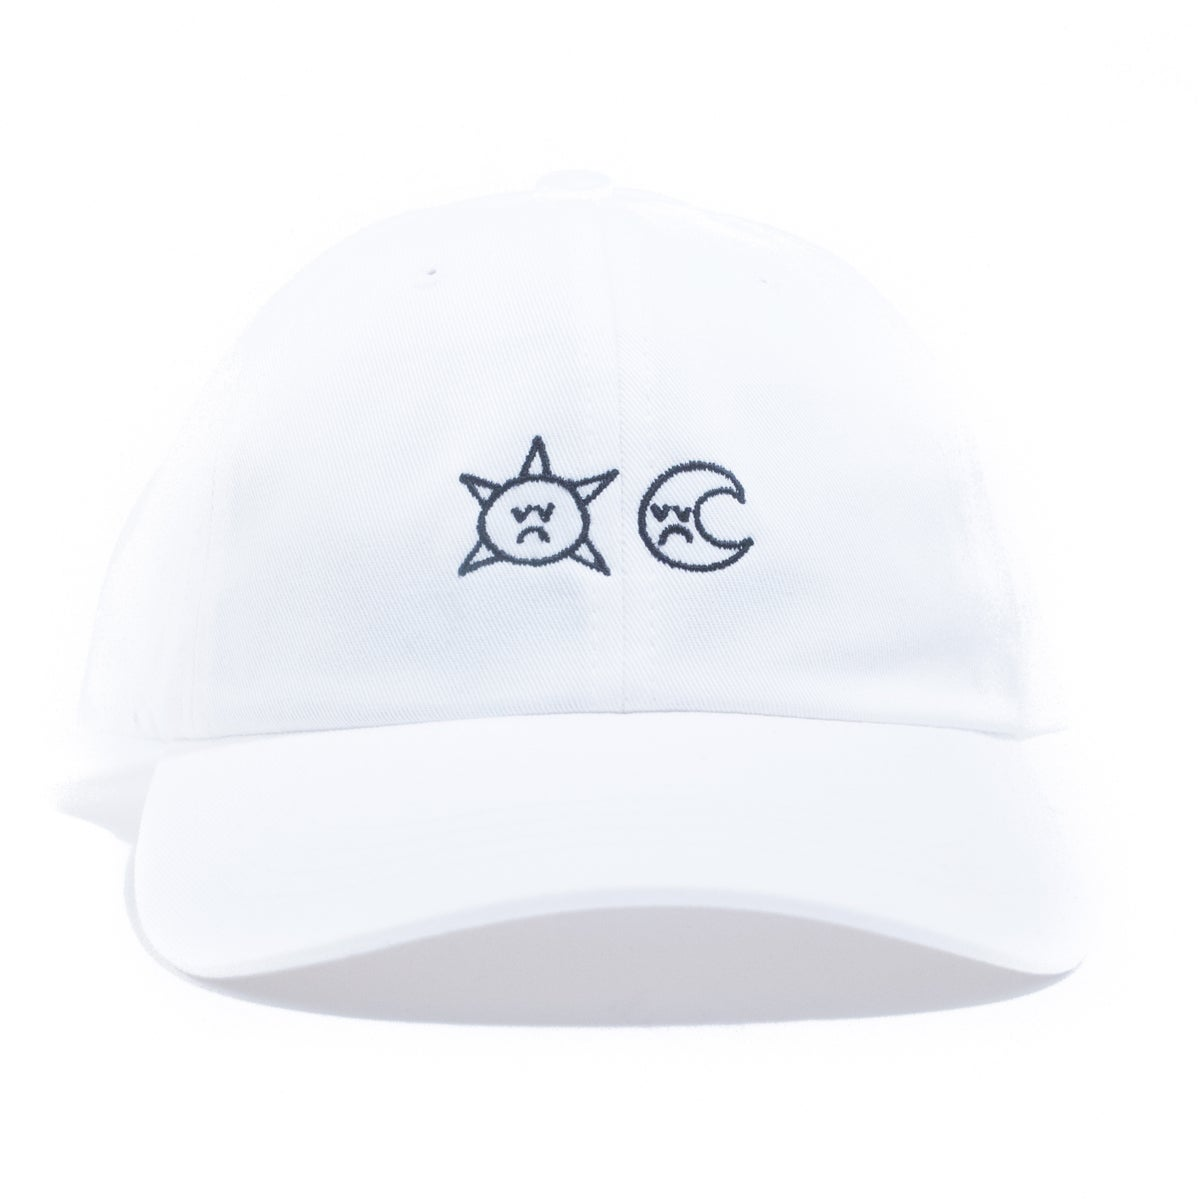 Image of Dreams & Schemes Cap (White)